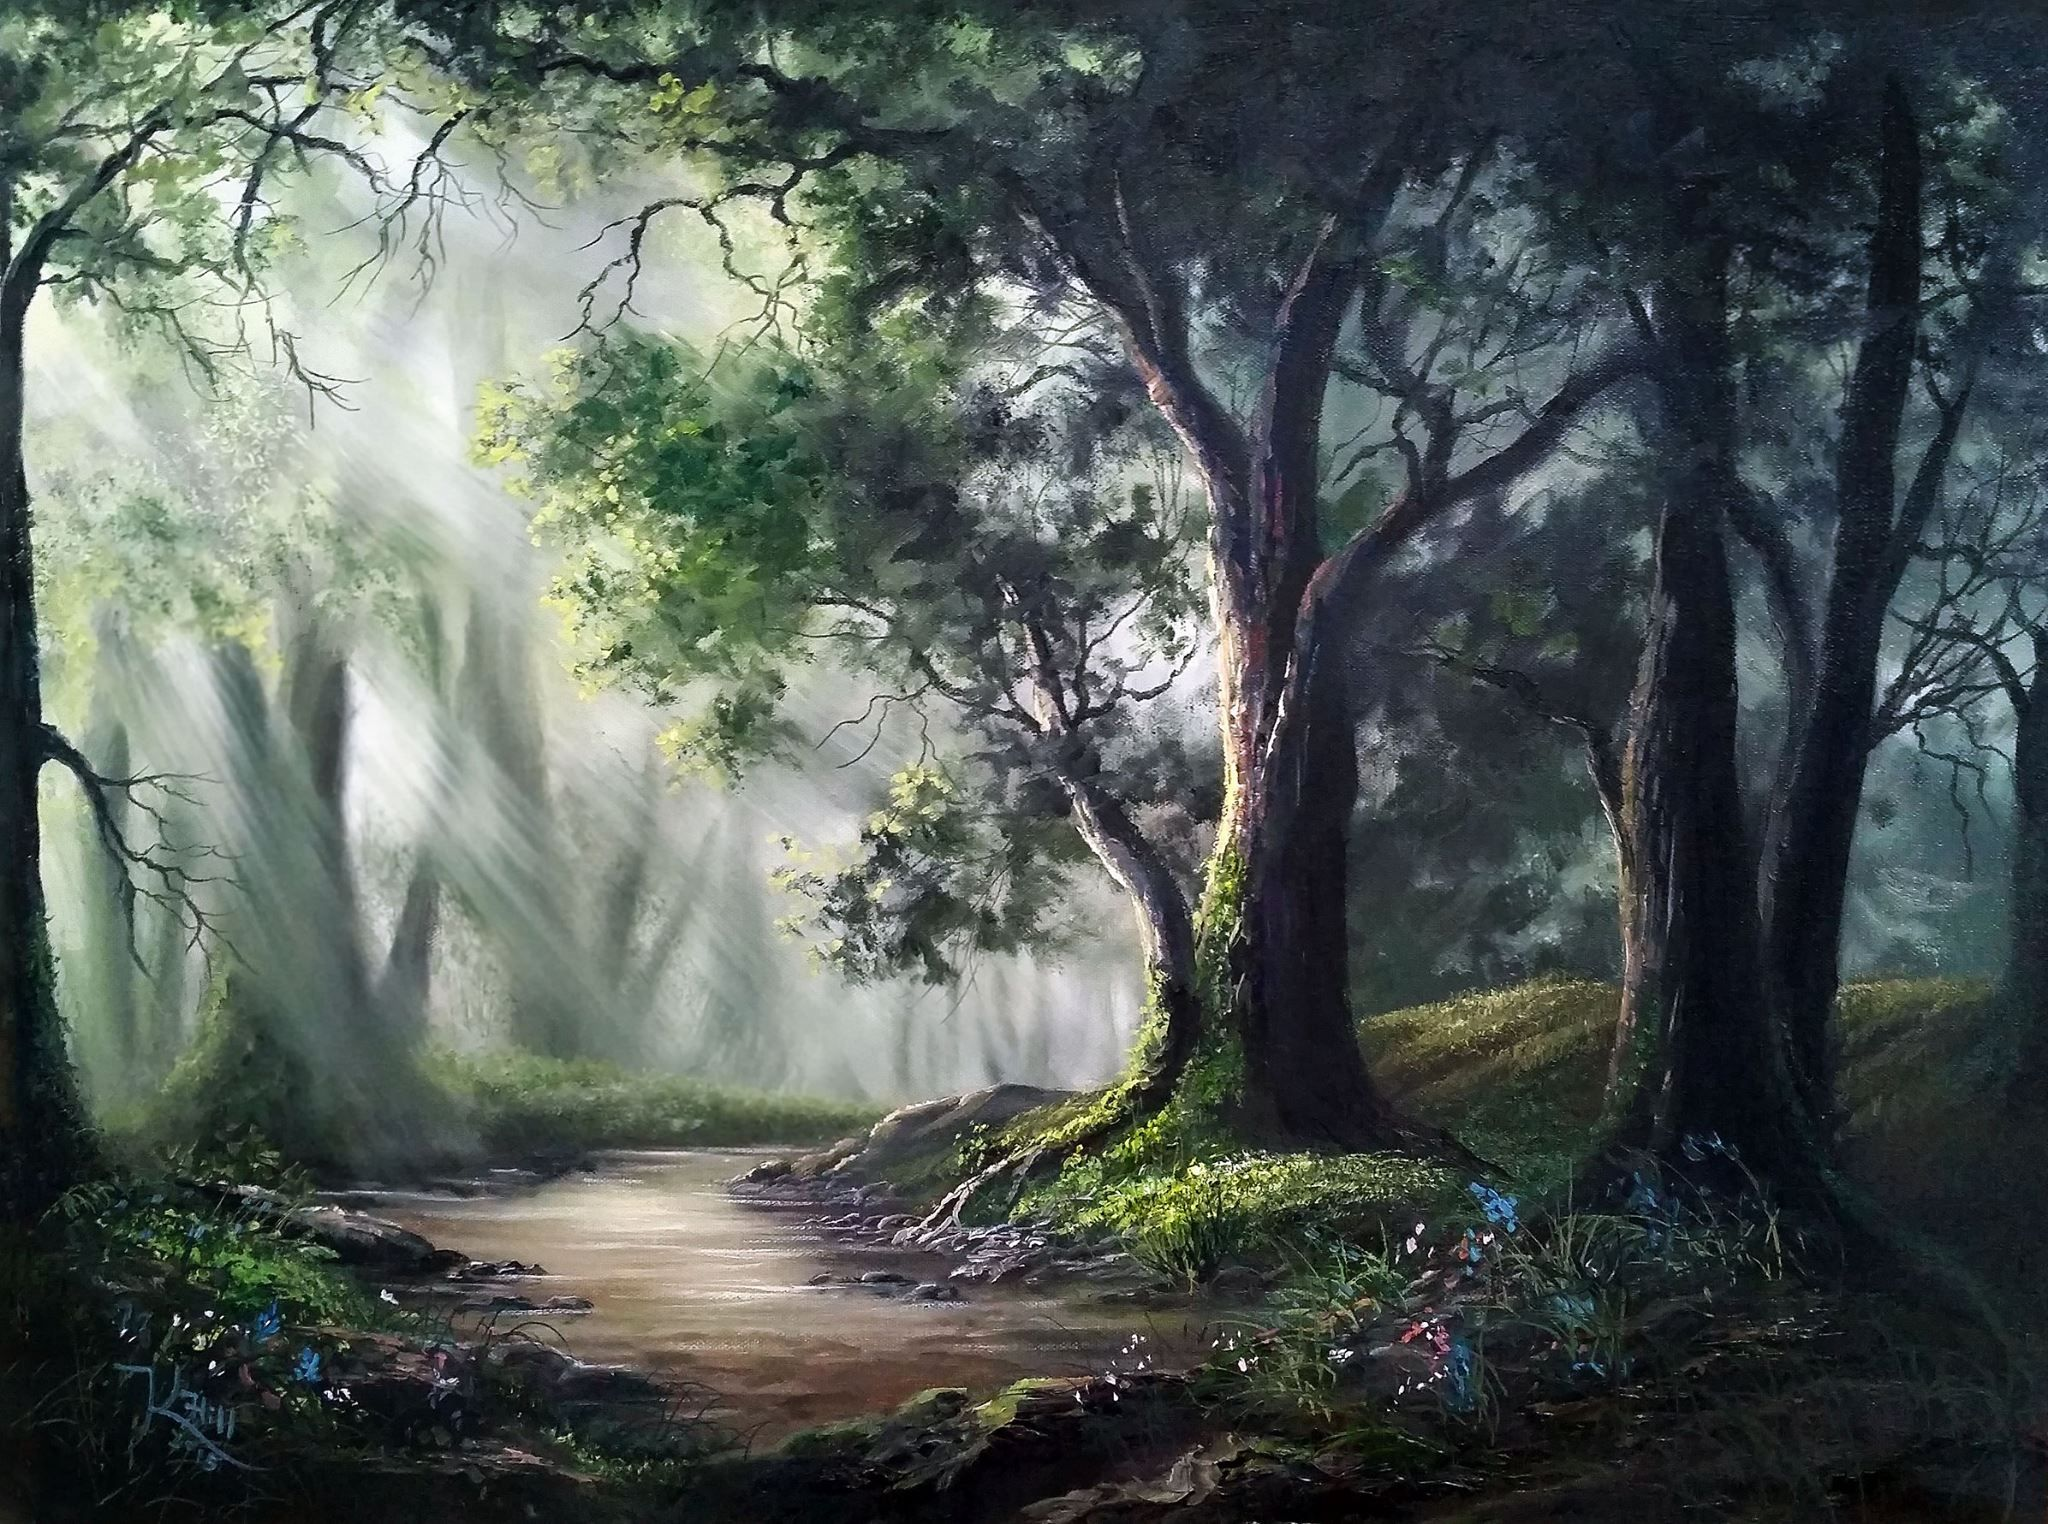 Sunlit Oak Forest By Kevin Hill Check Out My Youtube Channel Kevinoilpainting For More Information Kevin Hill Paintings Forest Painting Landscape Paintings